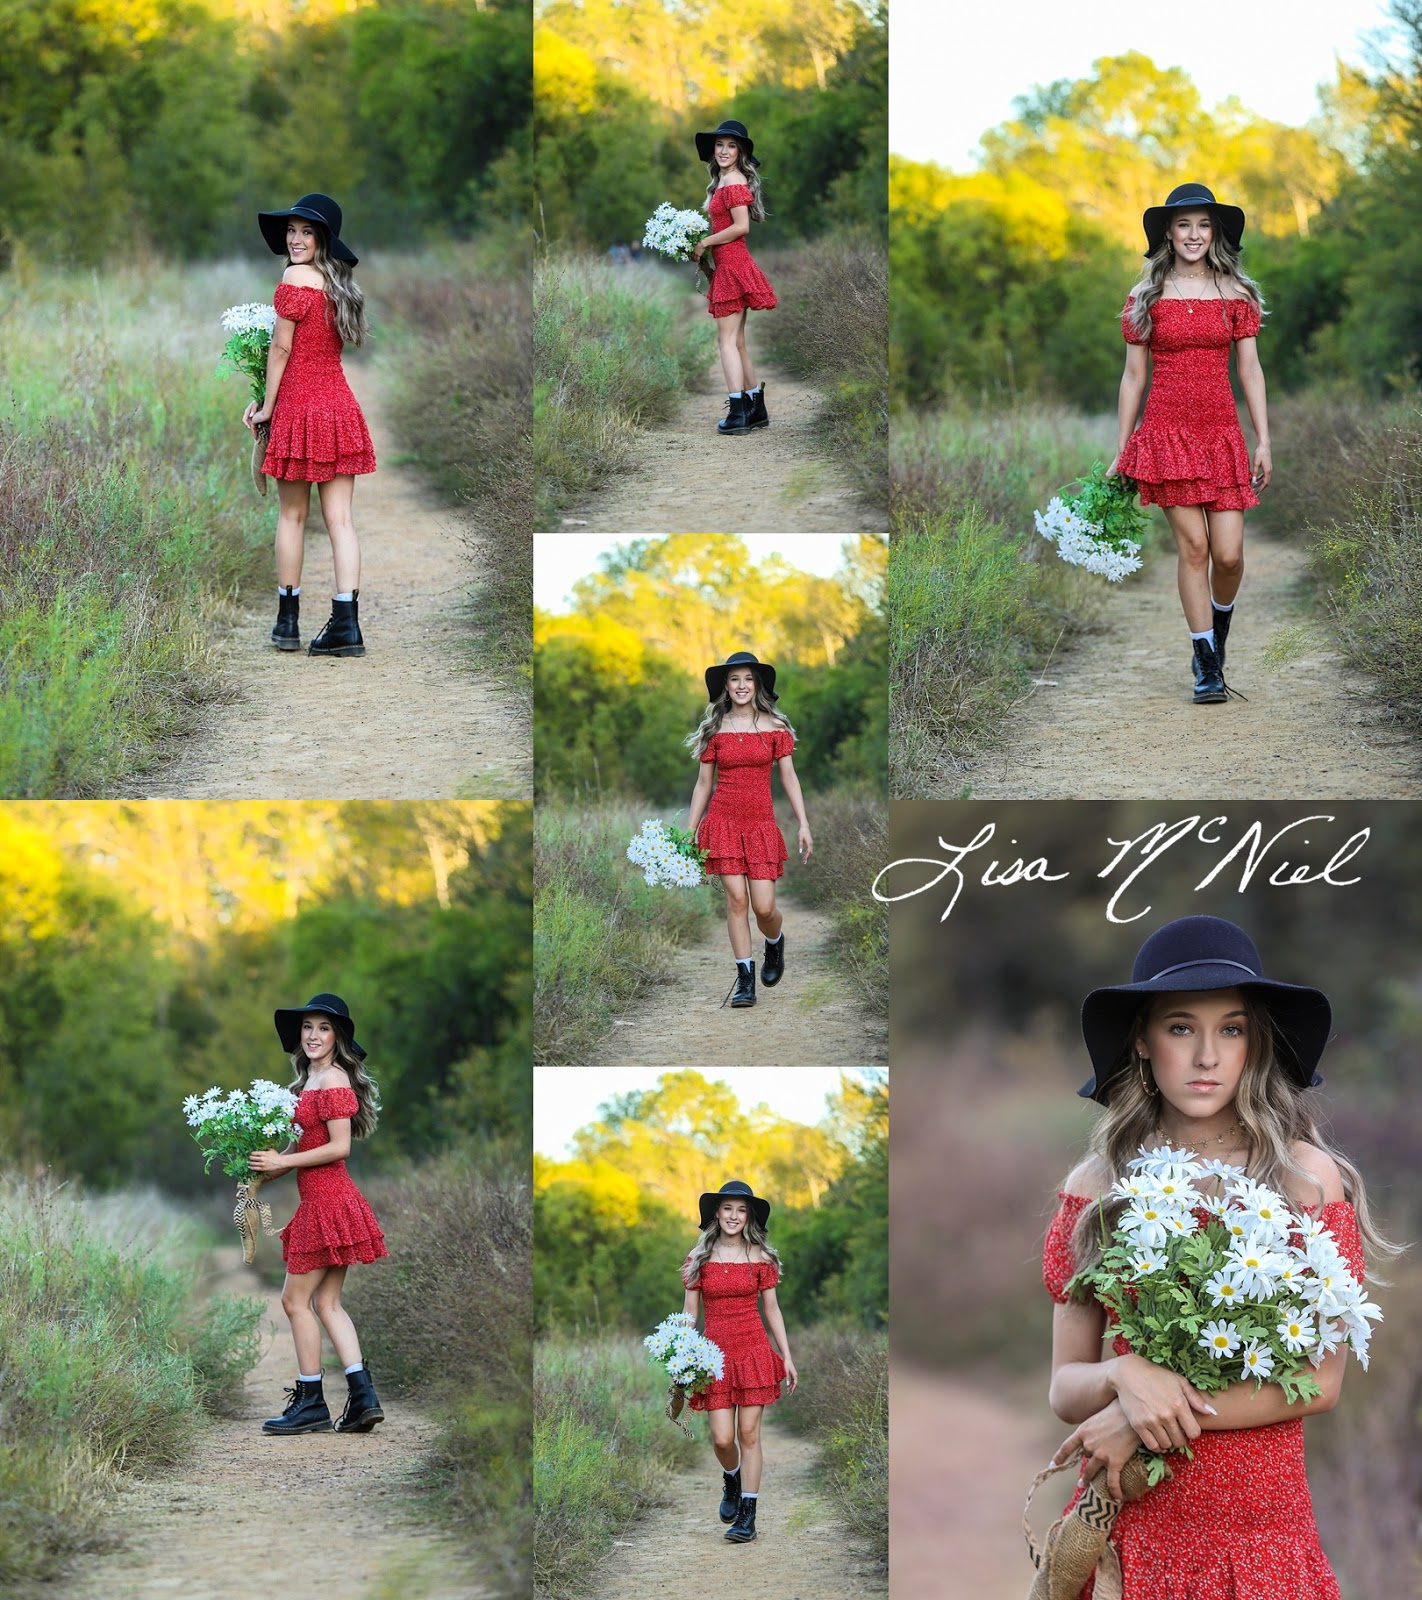 collage of photo ideas in field